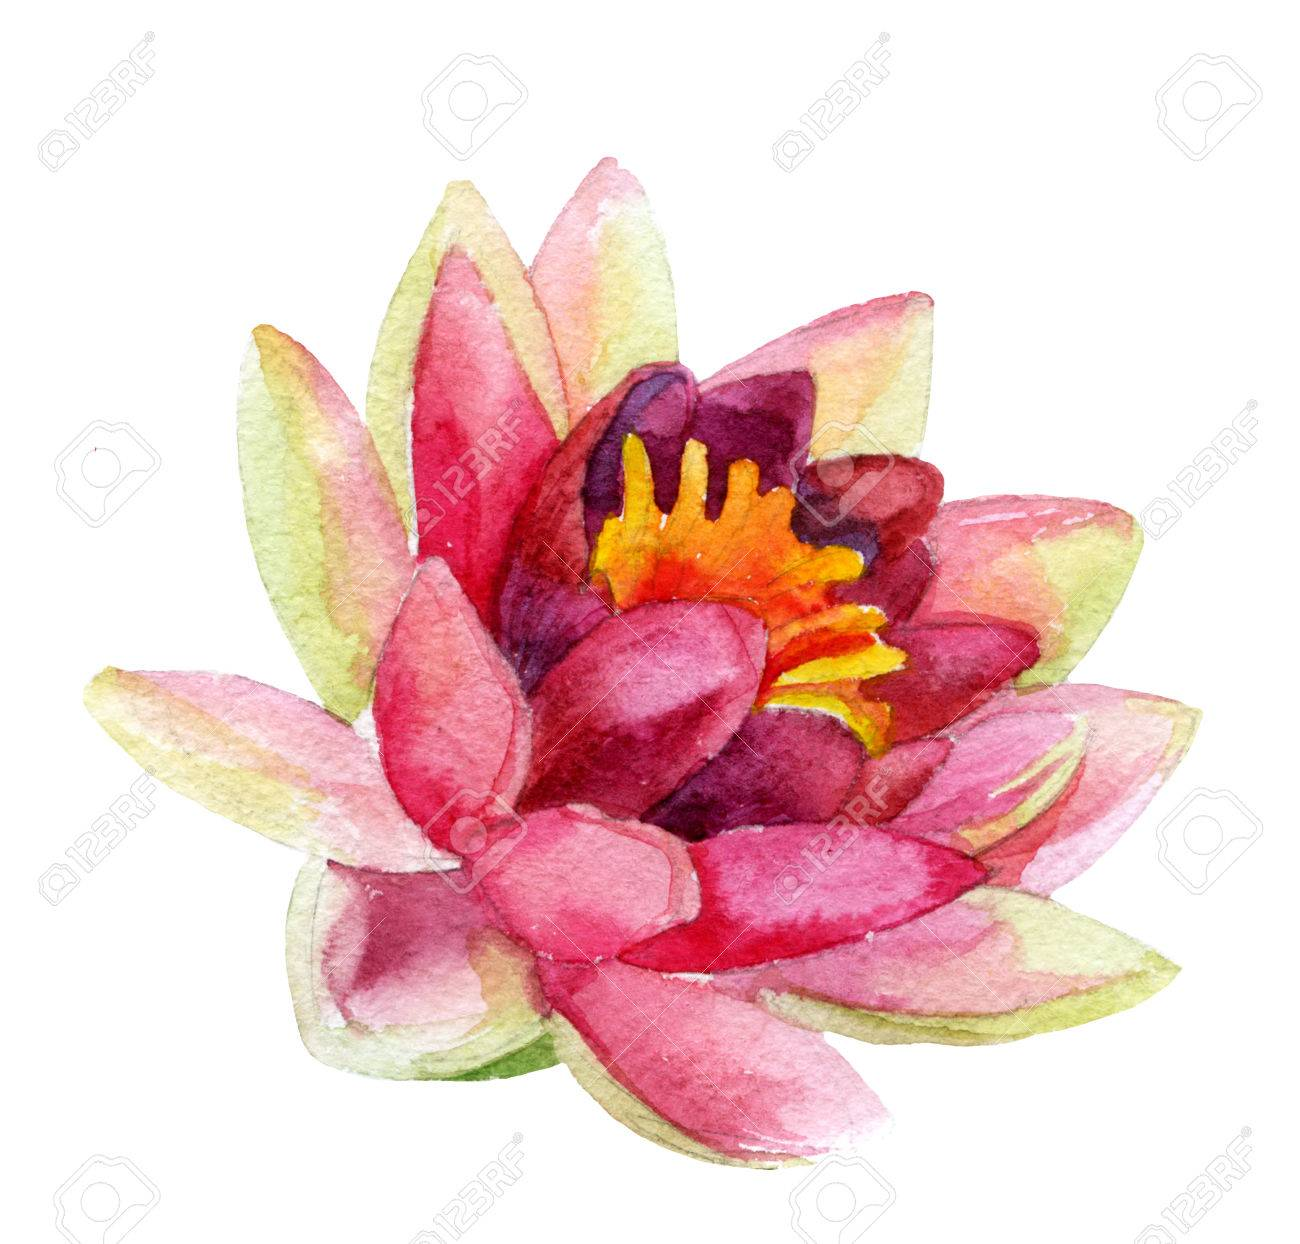 Hand Painted Lotus Flower Watercolor Illustration Stock Photo